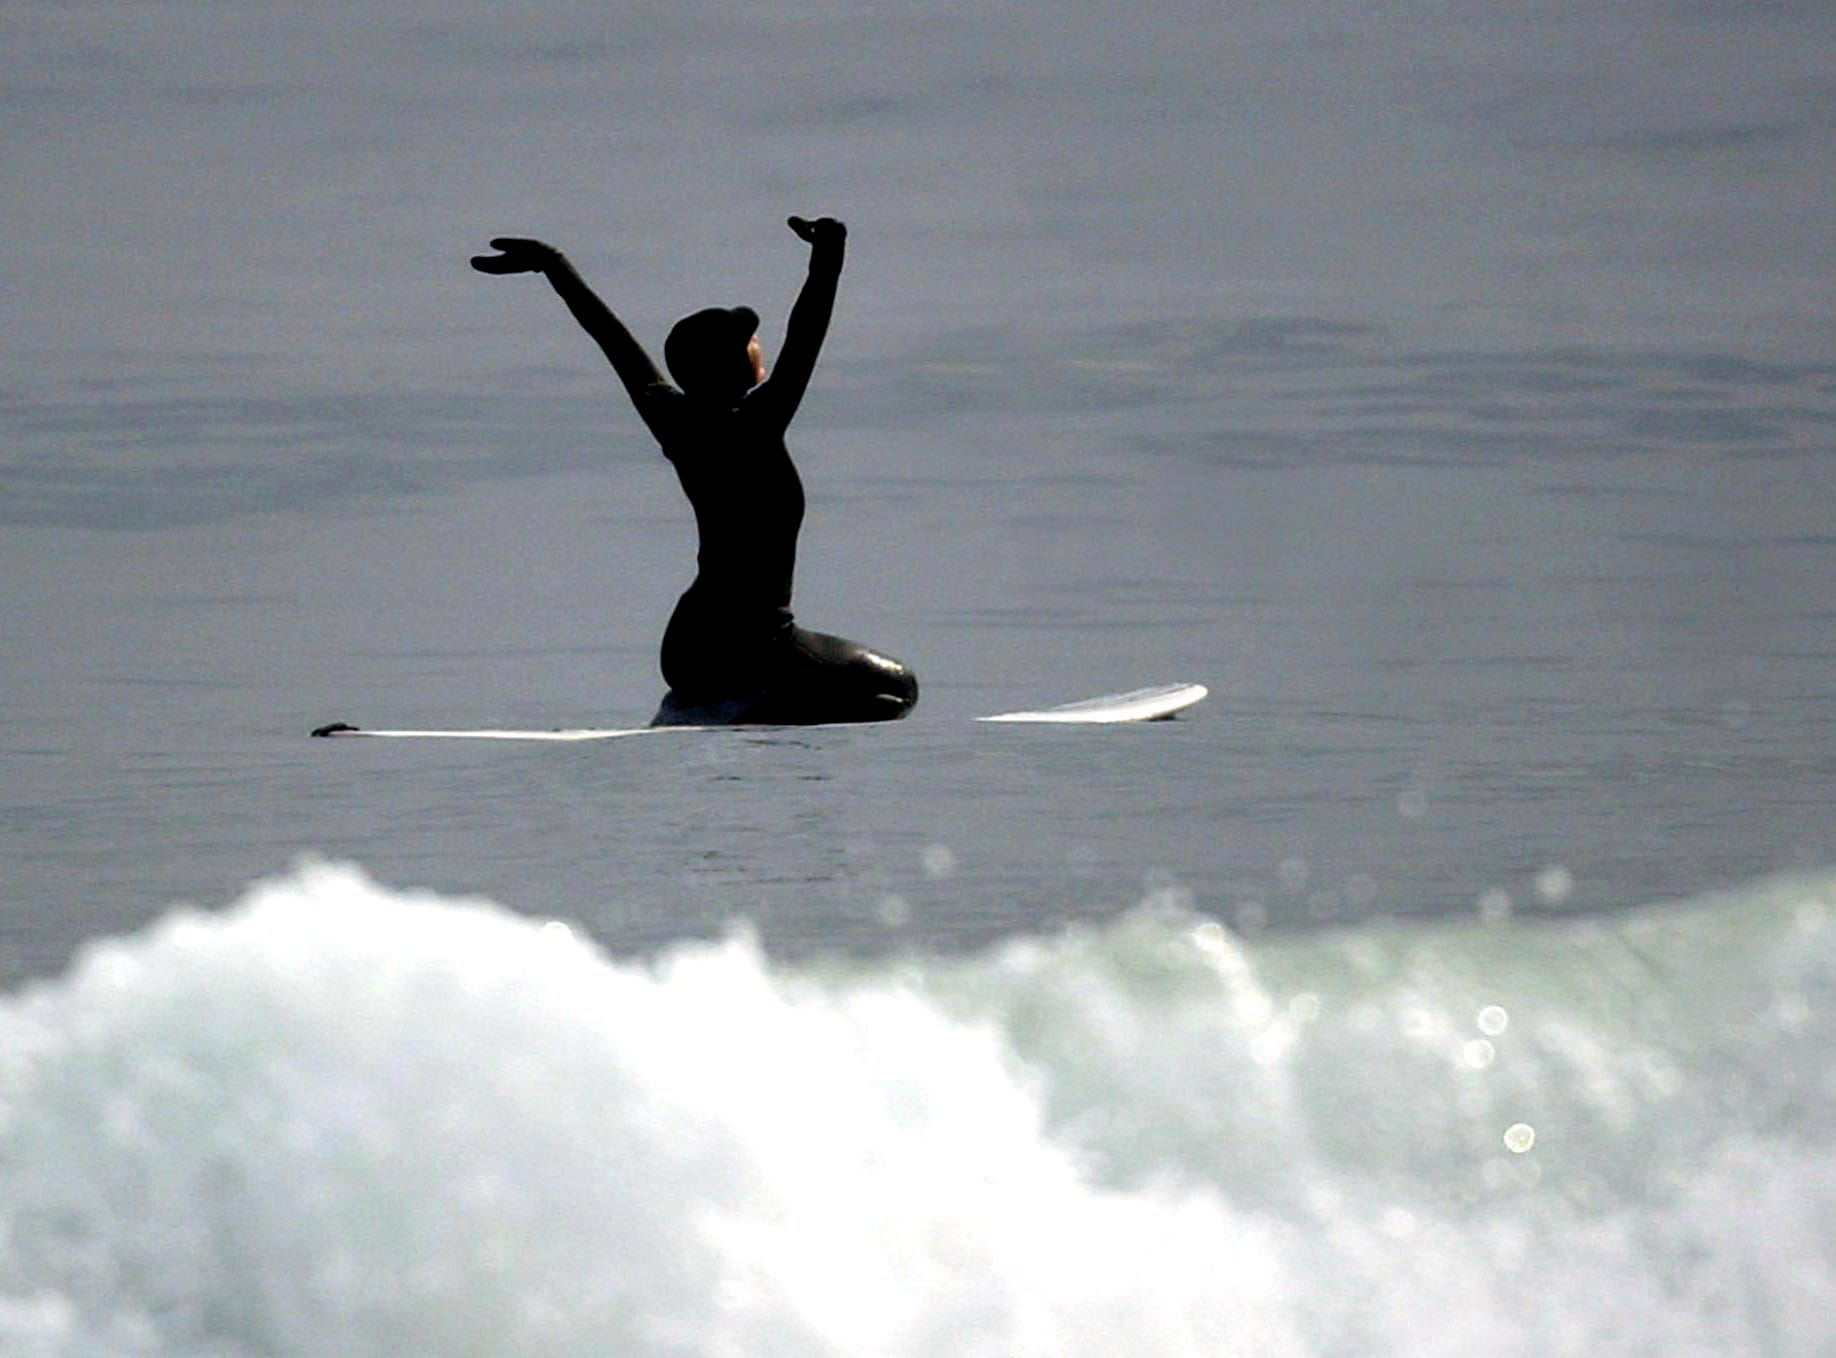 Surfer Stefanie Gallo reaches her arms towards the sky at Seaside Heights, New Jersey as she 'gives thanks,' a surfing tradition. February 5, 2005, Seaside Heights, New Jersey